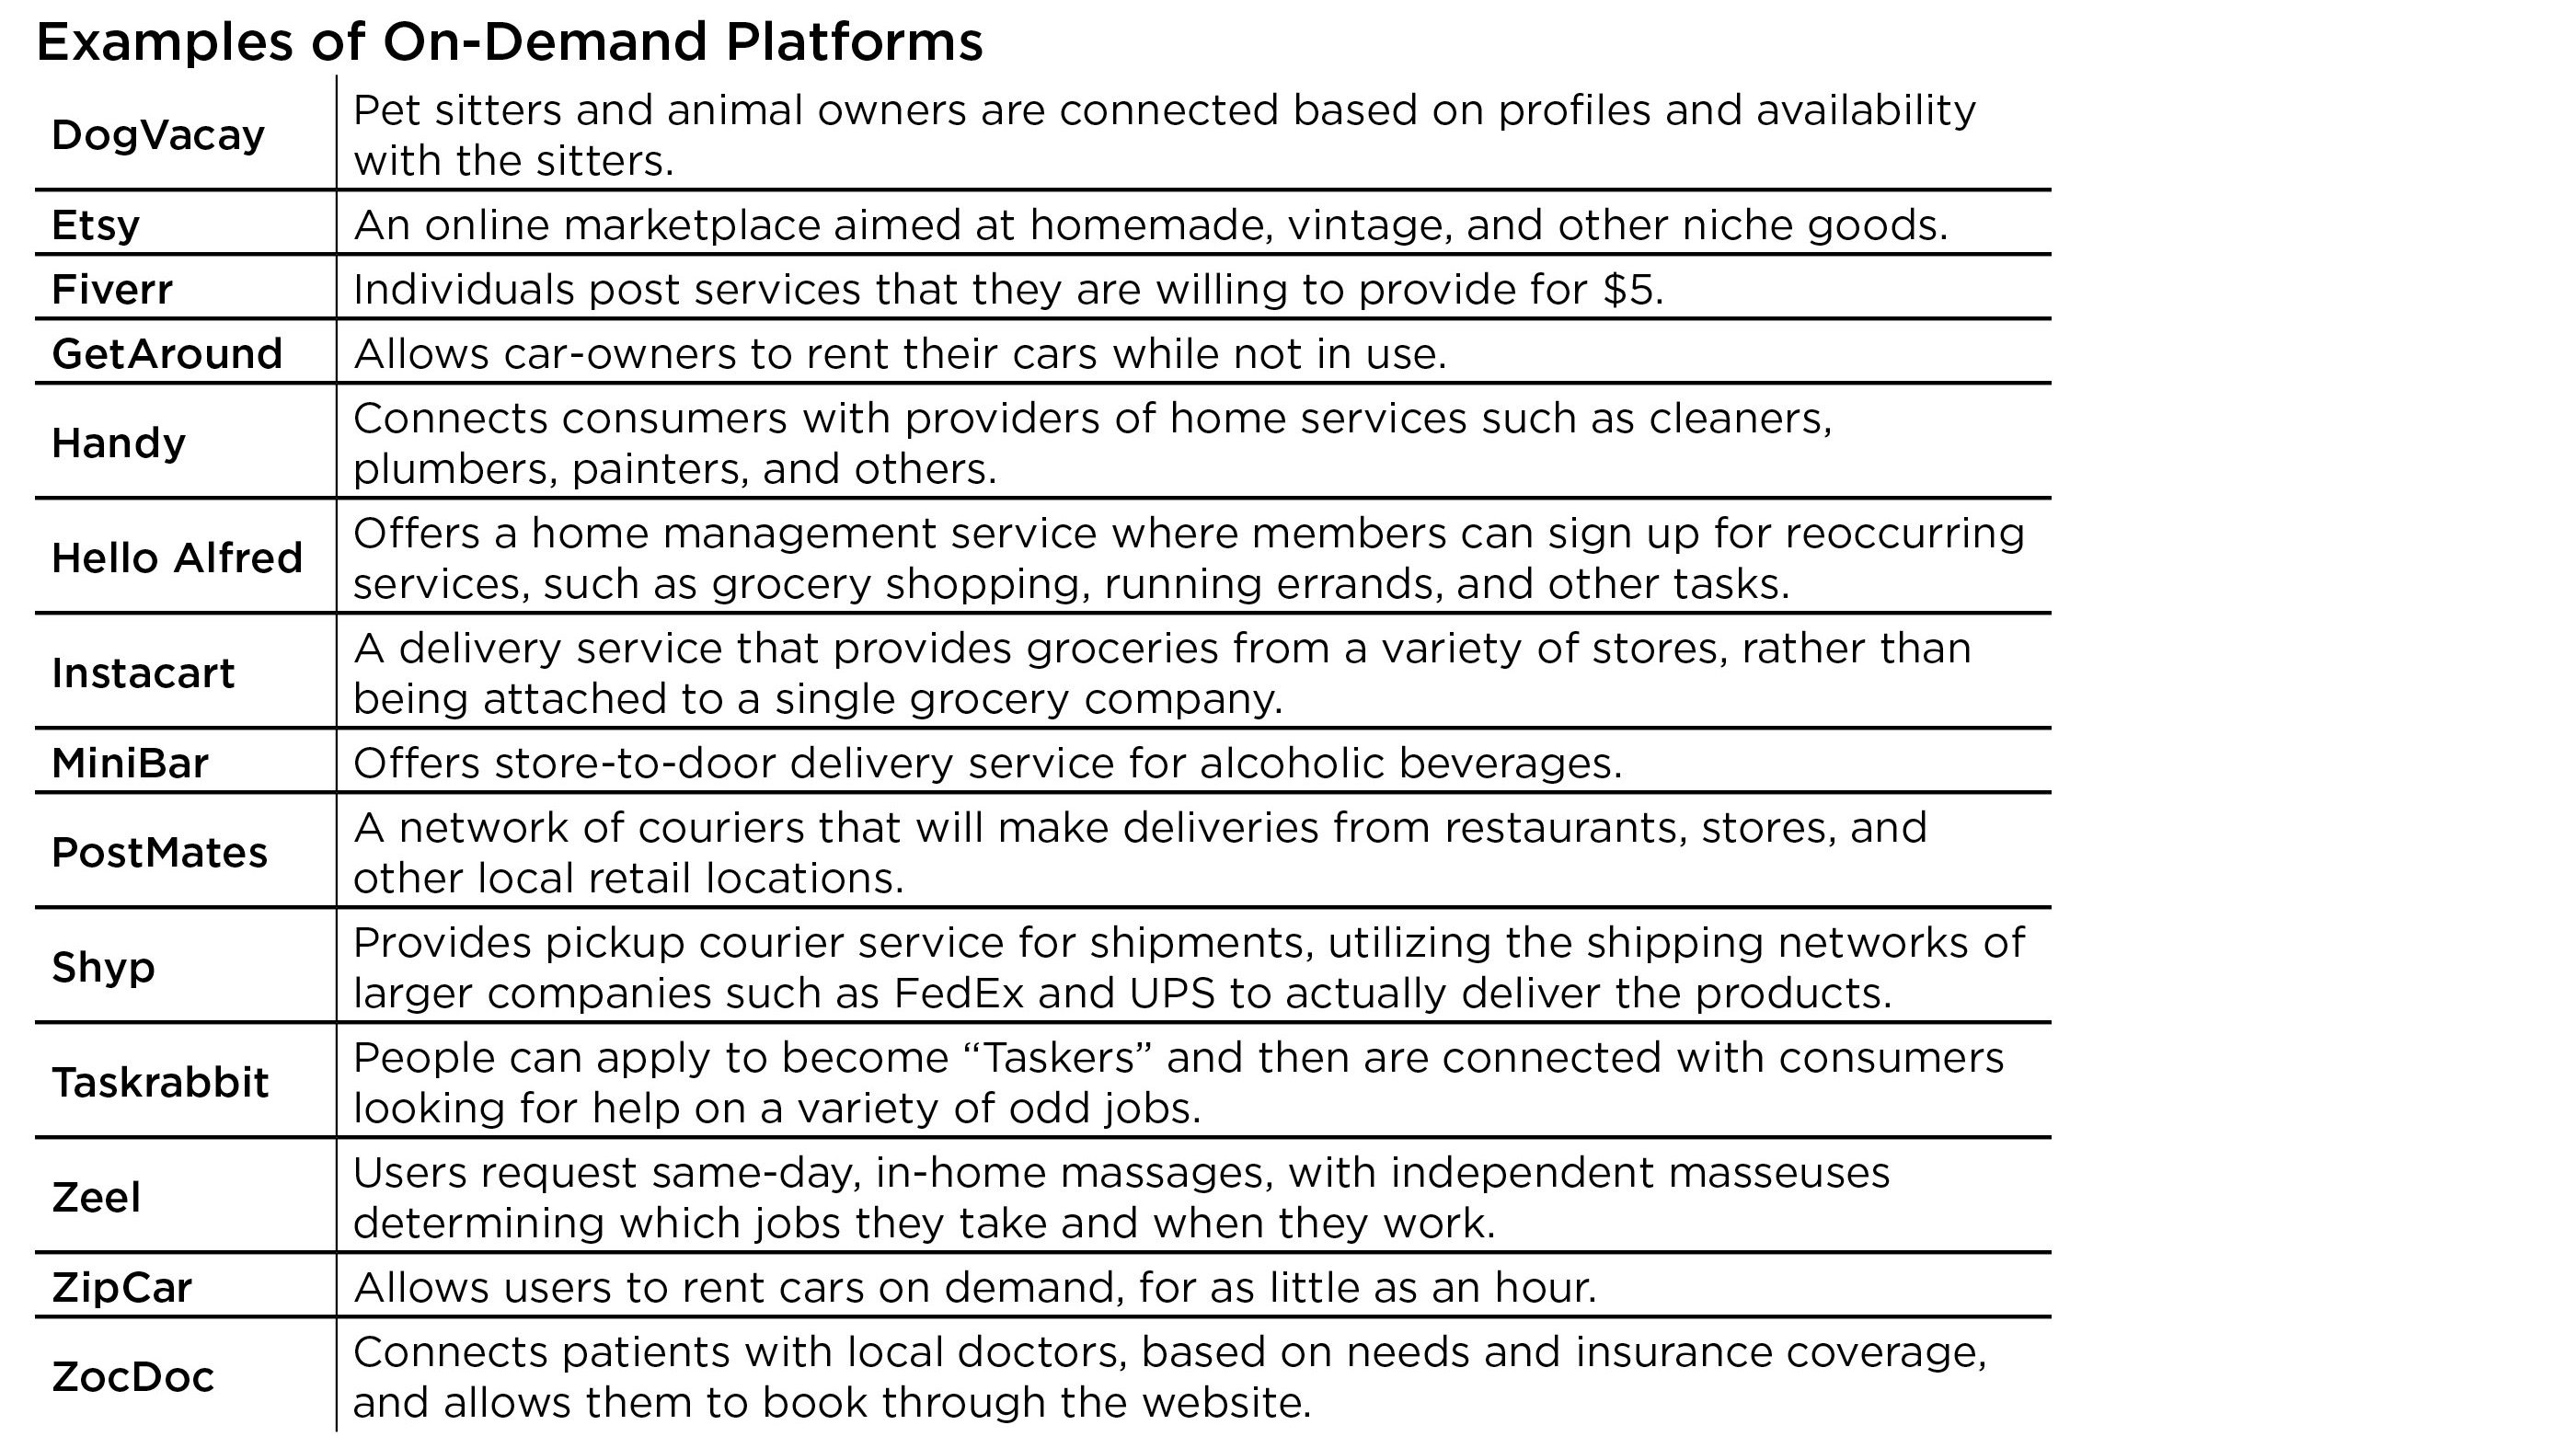 Examples of On-Demand Platforms